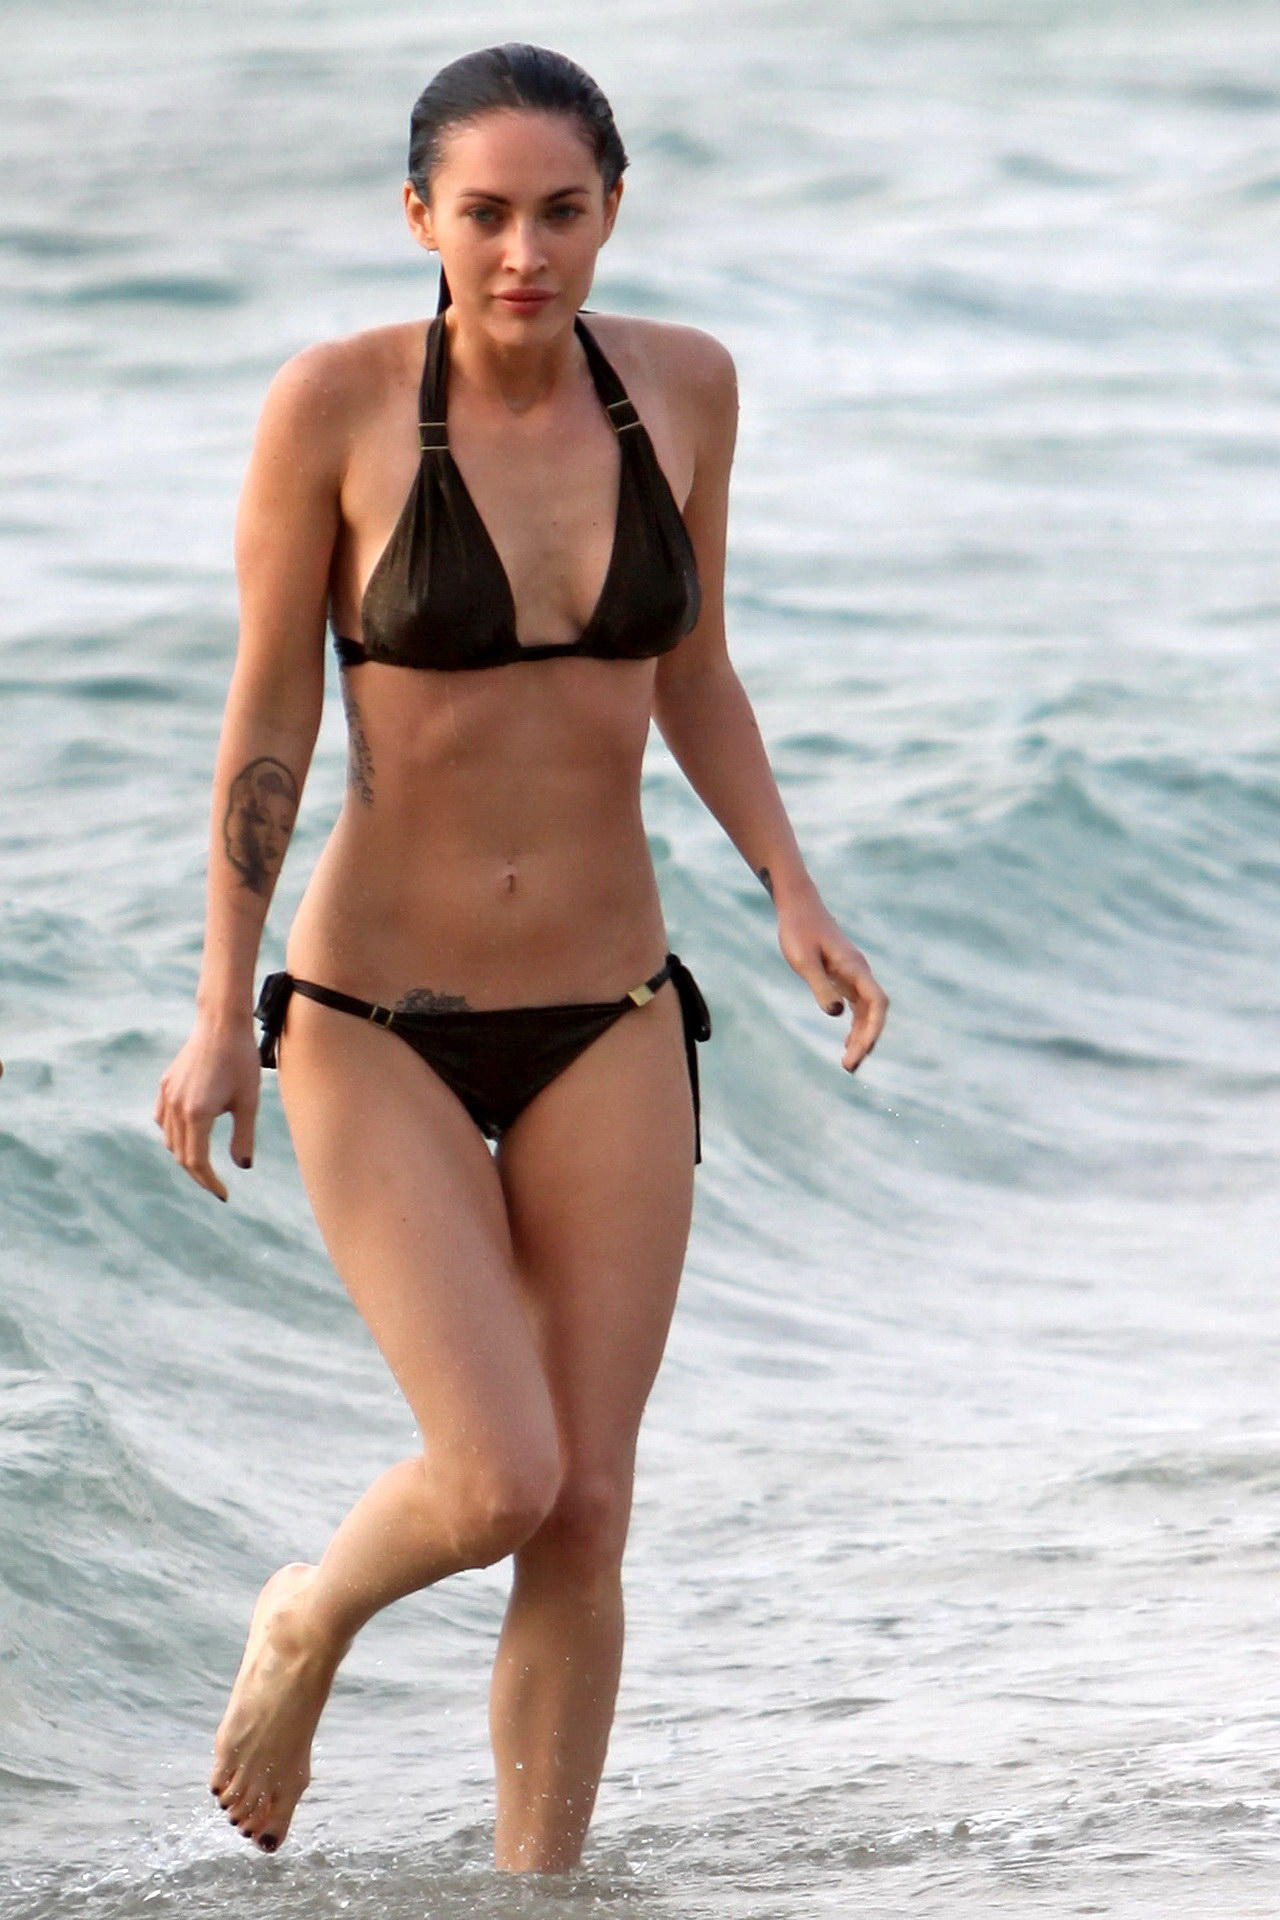 megan fox in tiny bikini showing off her perfect abs on the beach in